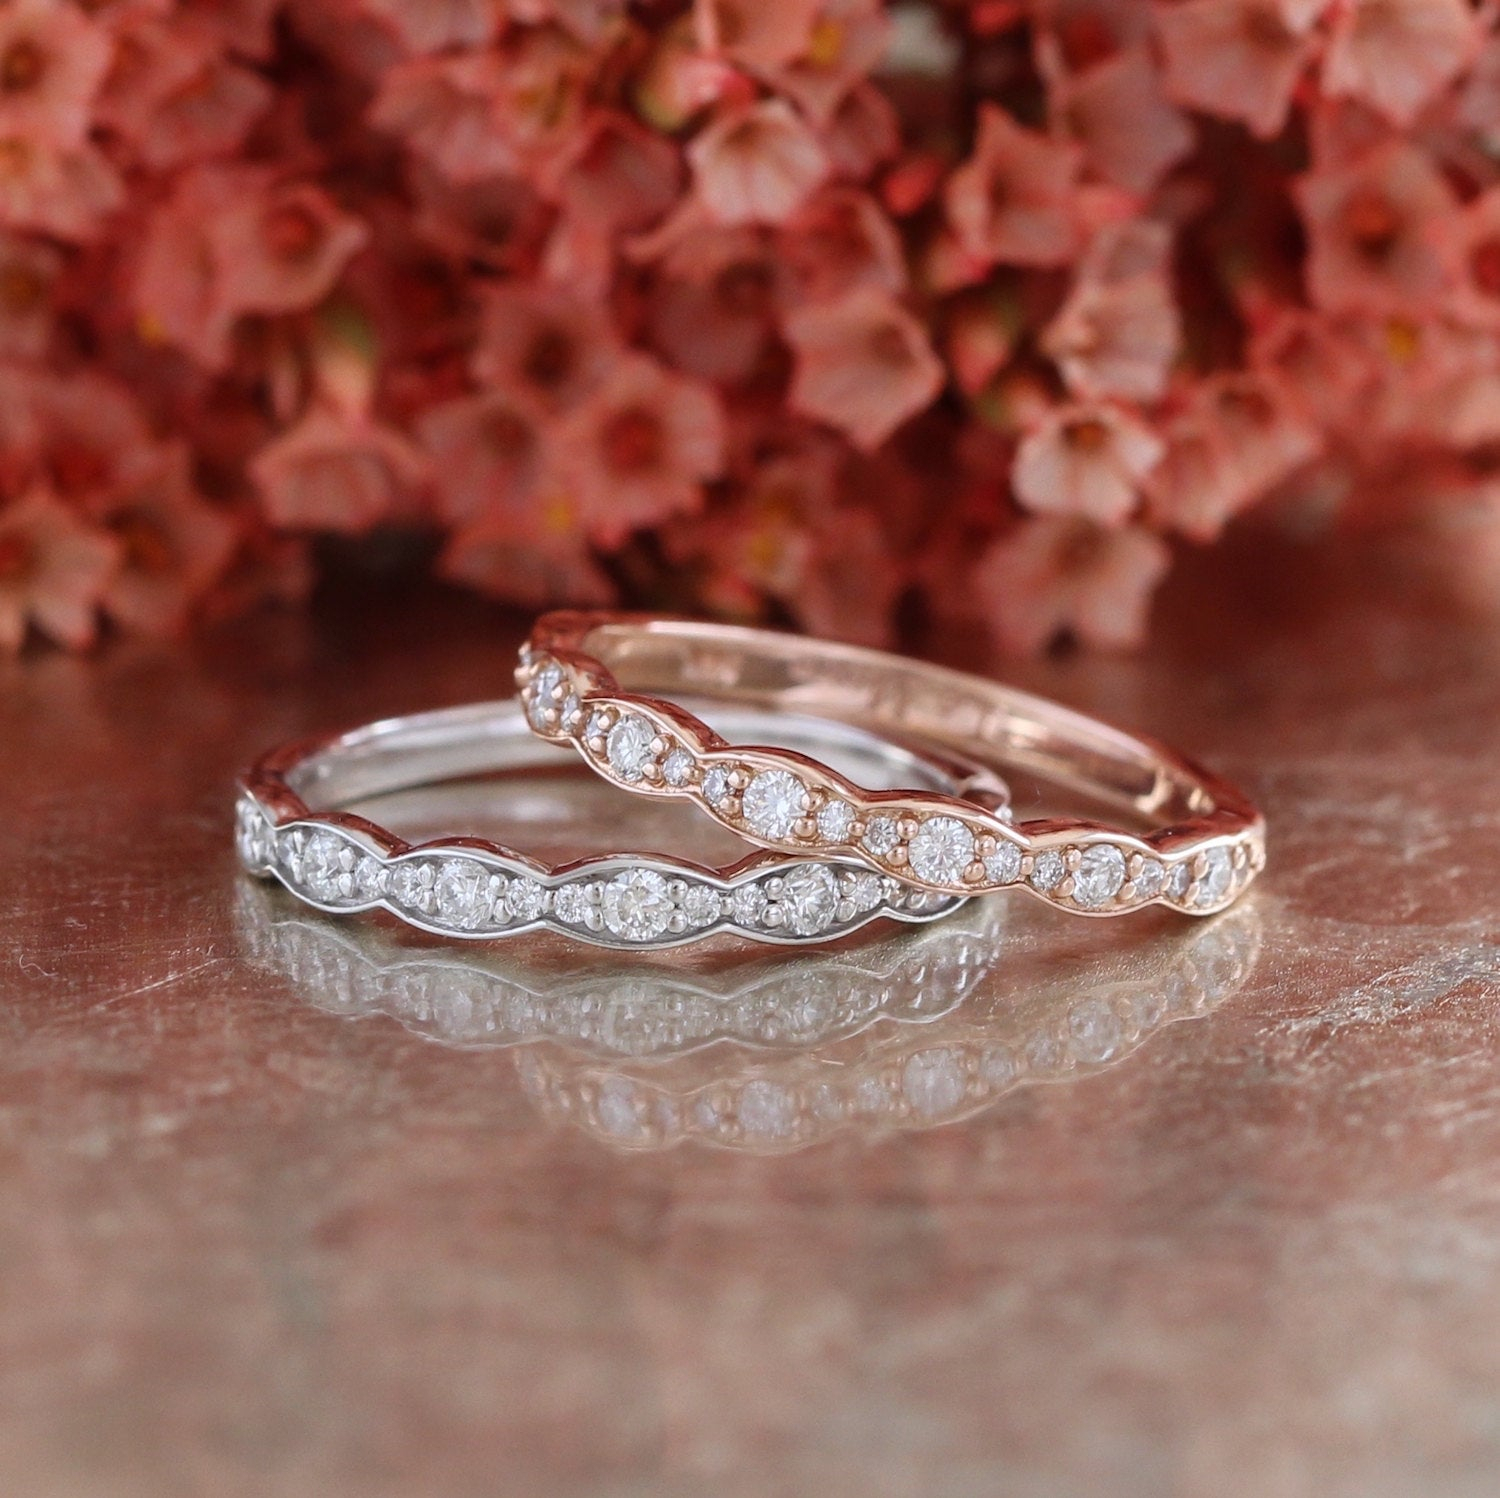 Matching Scalloped Diamond Wedding Ring Vintage Inspired Diamond  Anniversary Ring In 14K White, Yellow Or Rose Gold Half Eternity Band For Best And Newest Diamond Vintage Style Anniversary Bands In Rose Gold (View 16 of 25)